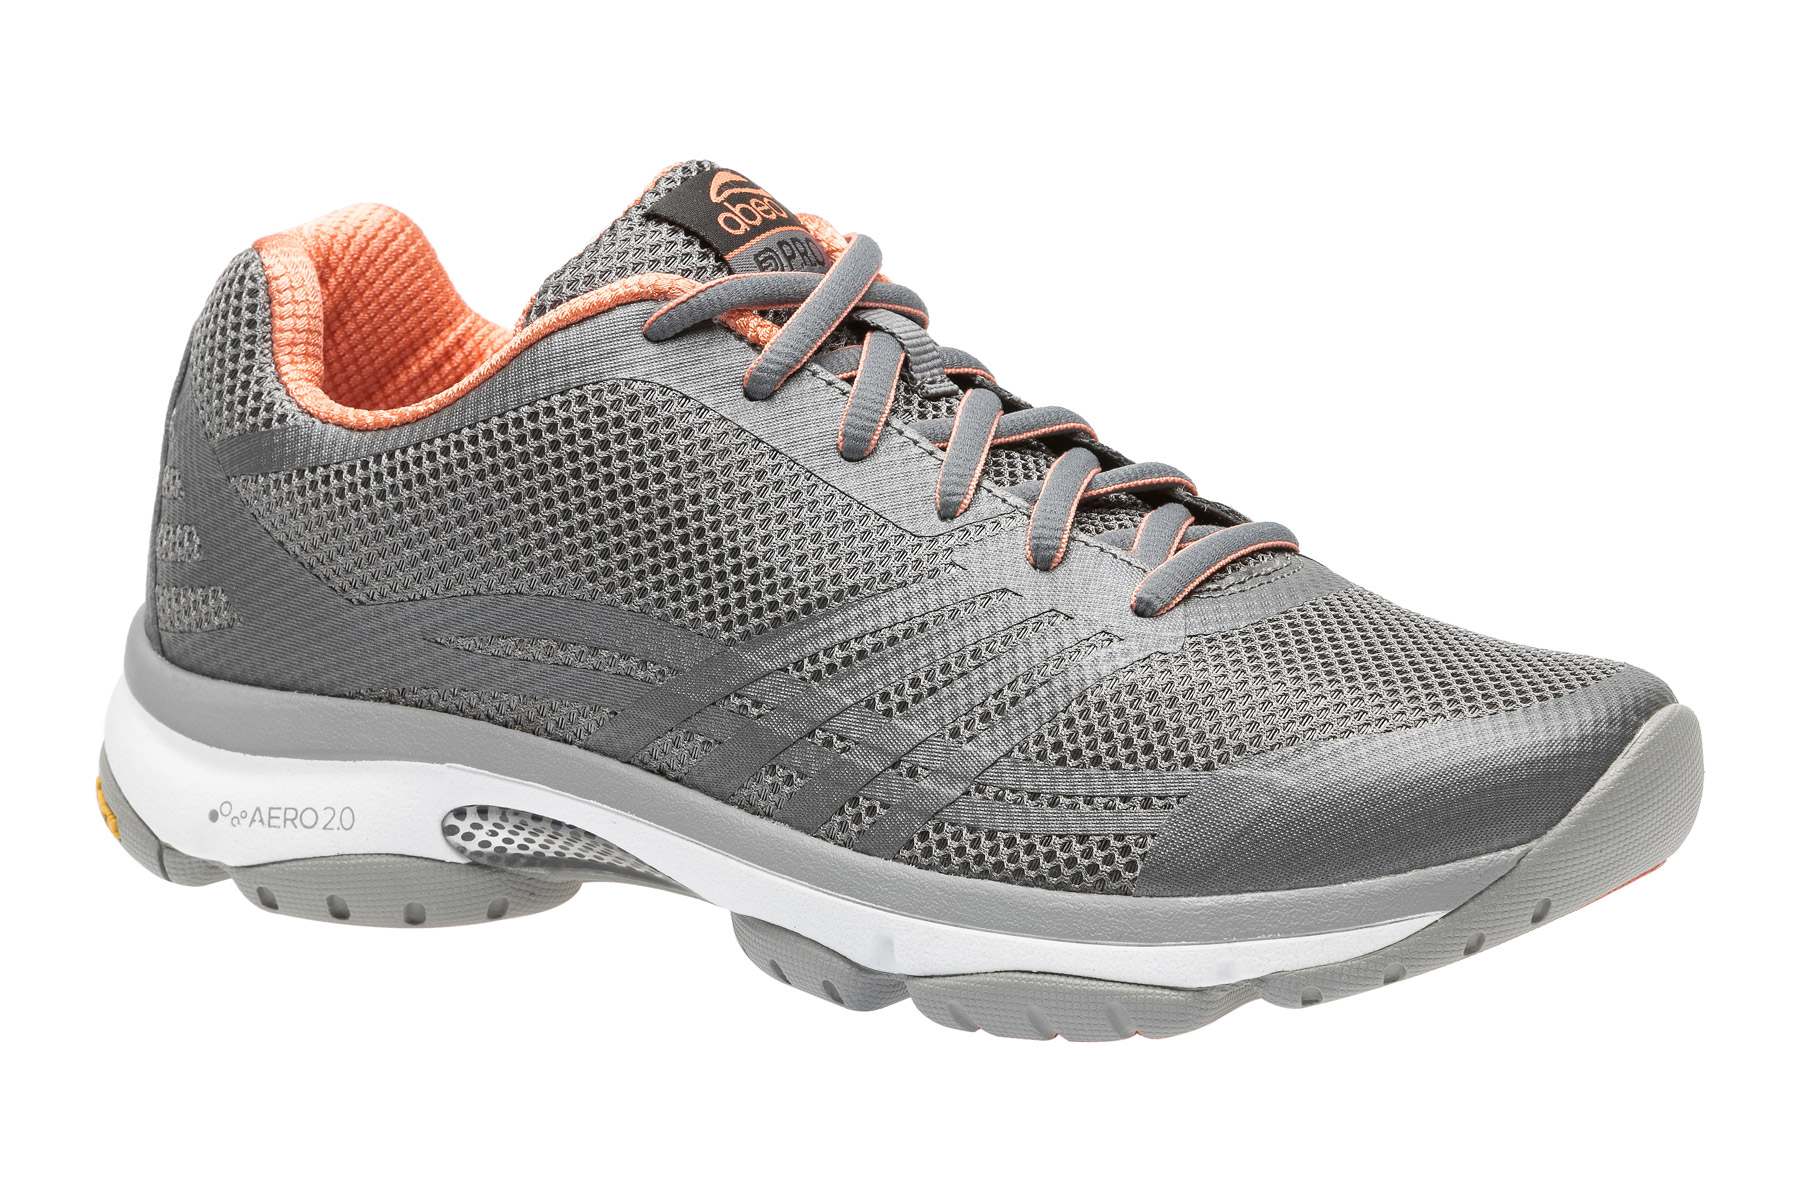 abeo running shoes